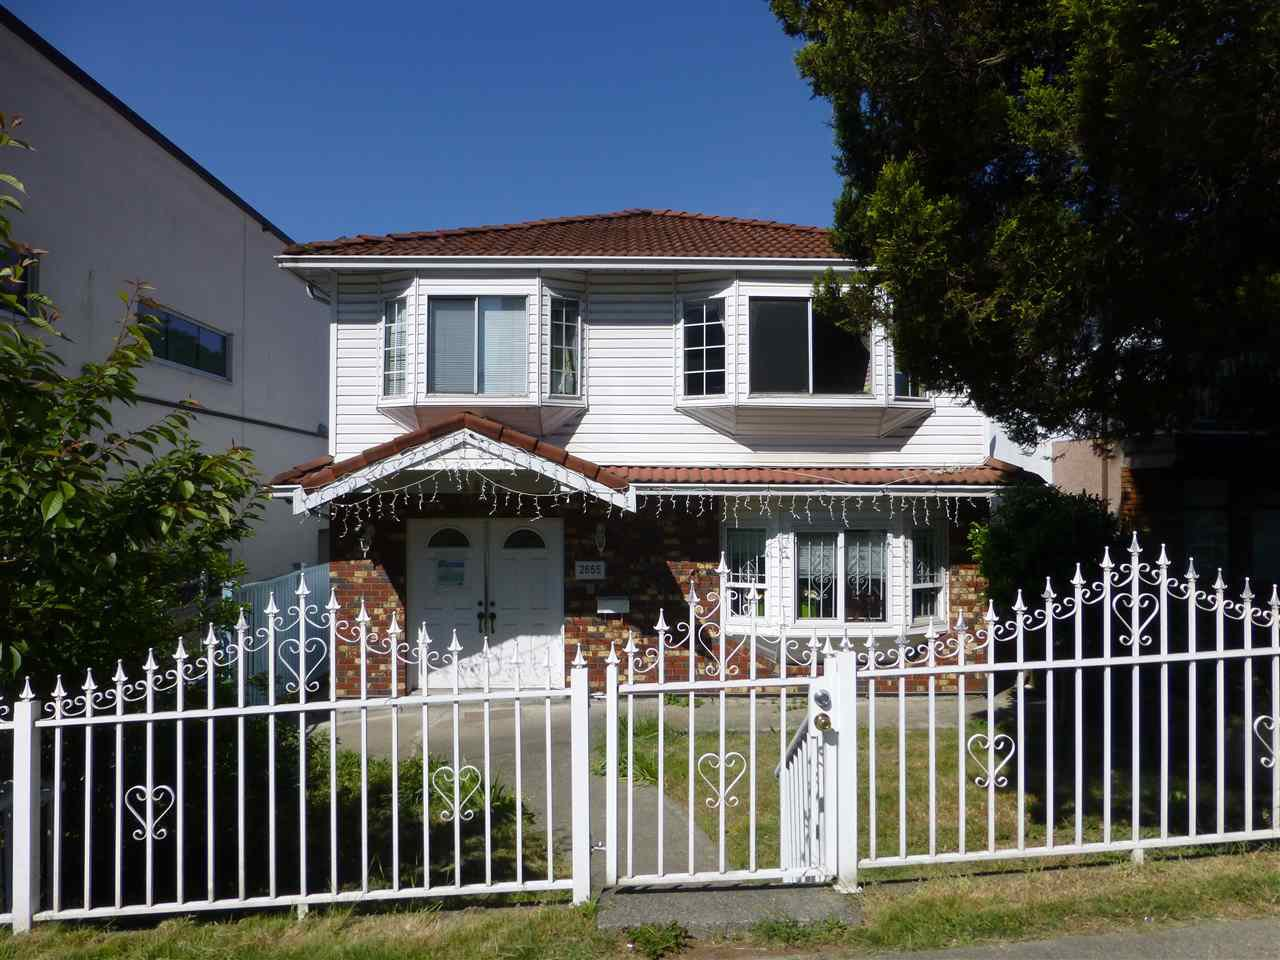 Main Photo: 2655 RENFREW STREET in Vancouver: Renfrew VE House for sale (Vancouver East)  : MLS®# R2067647